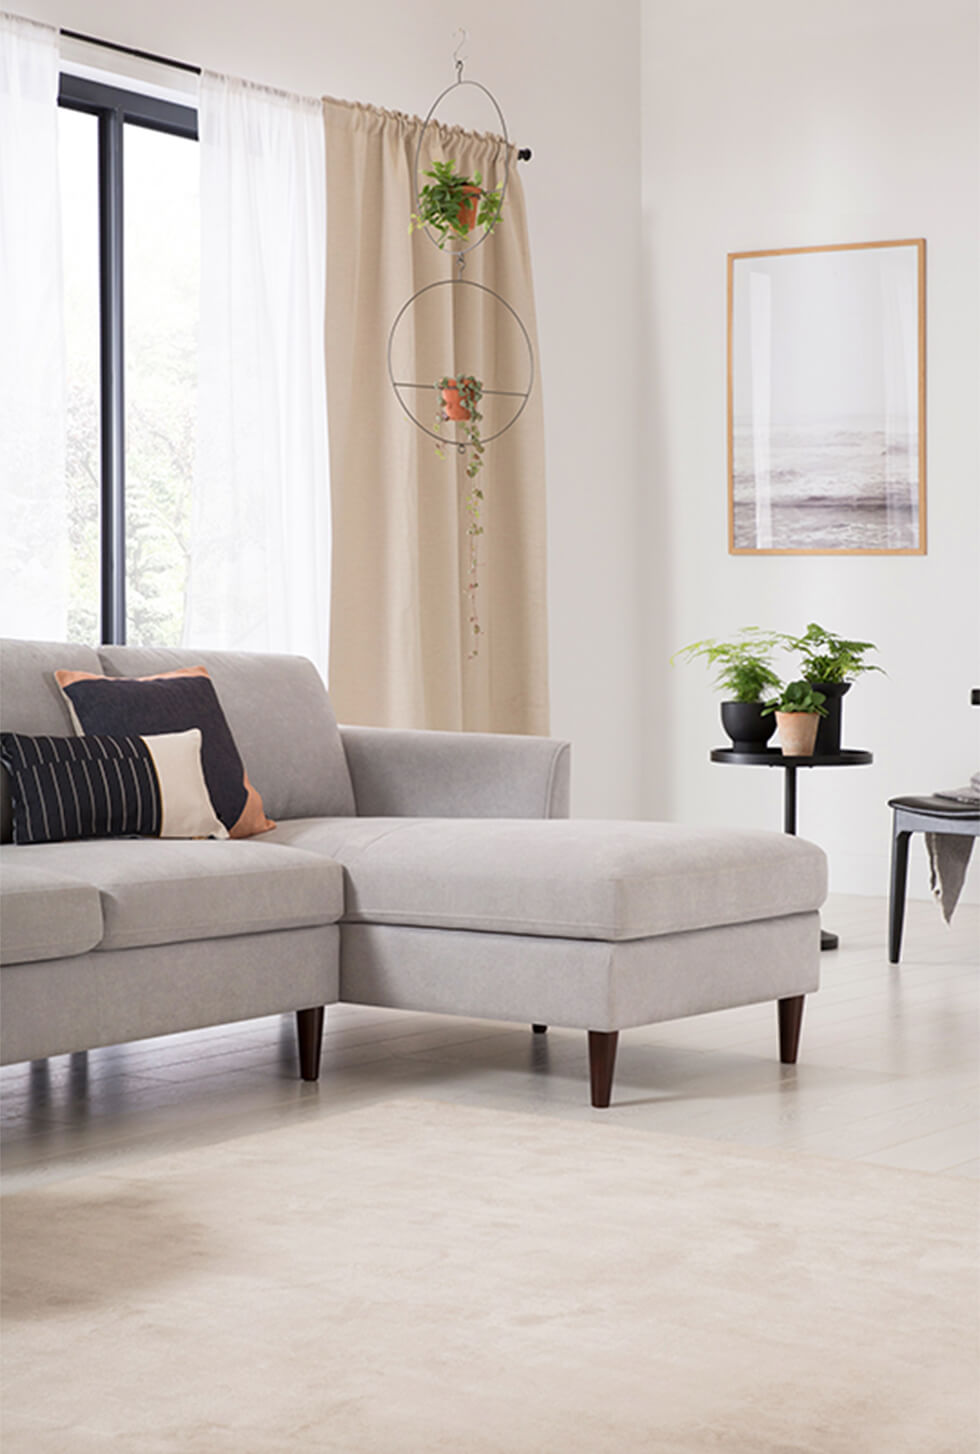 Grey plush fabric corner sofa in a modern white living room with indoor plants